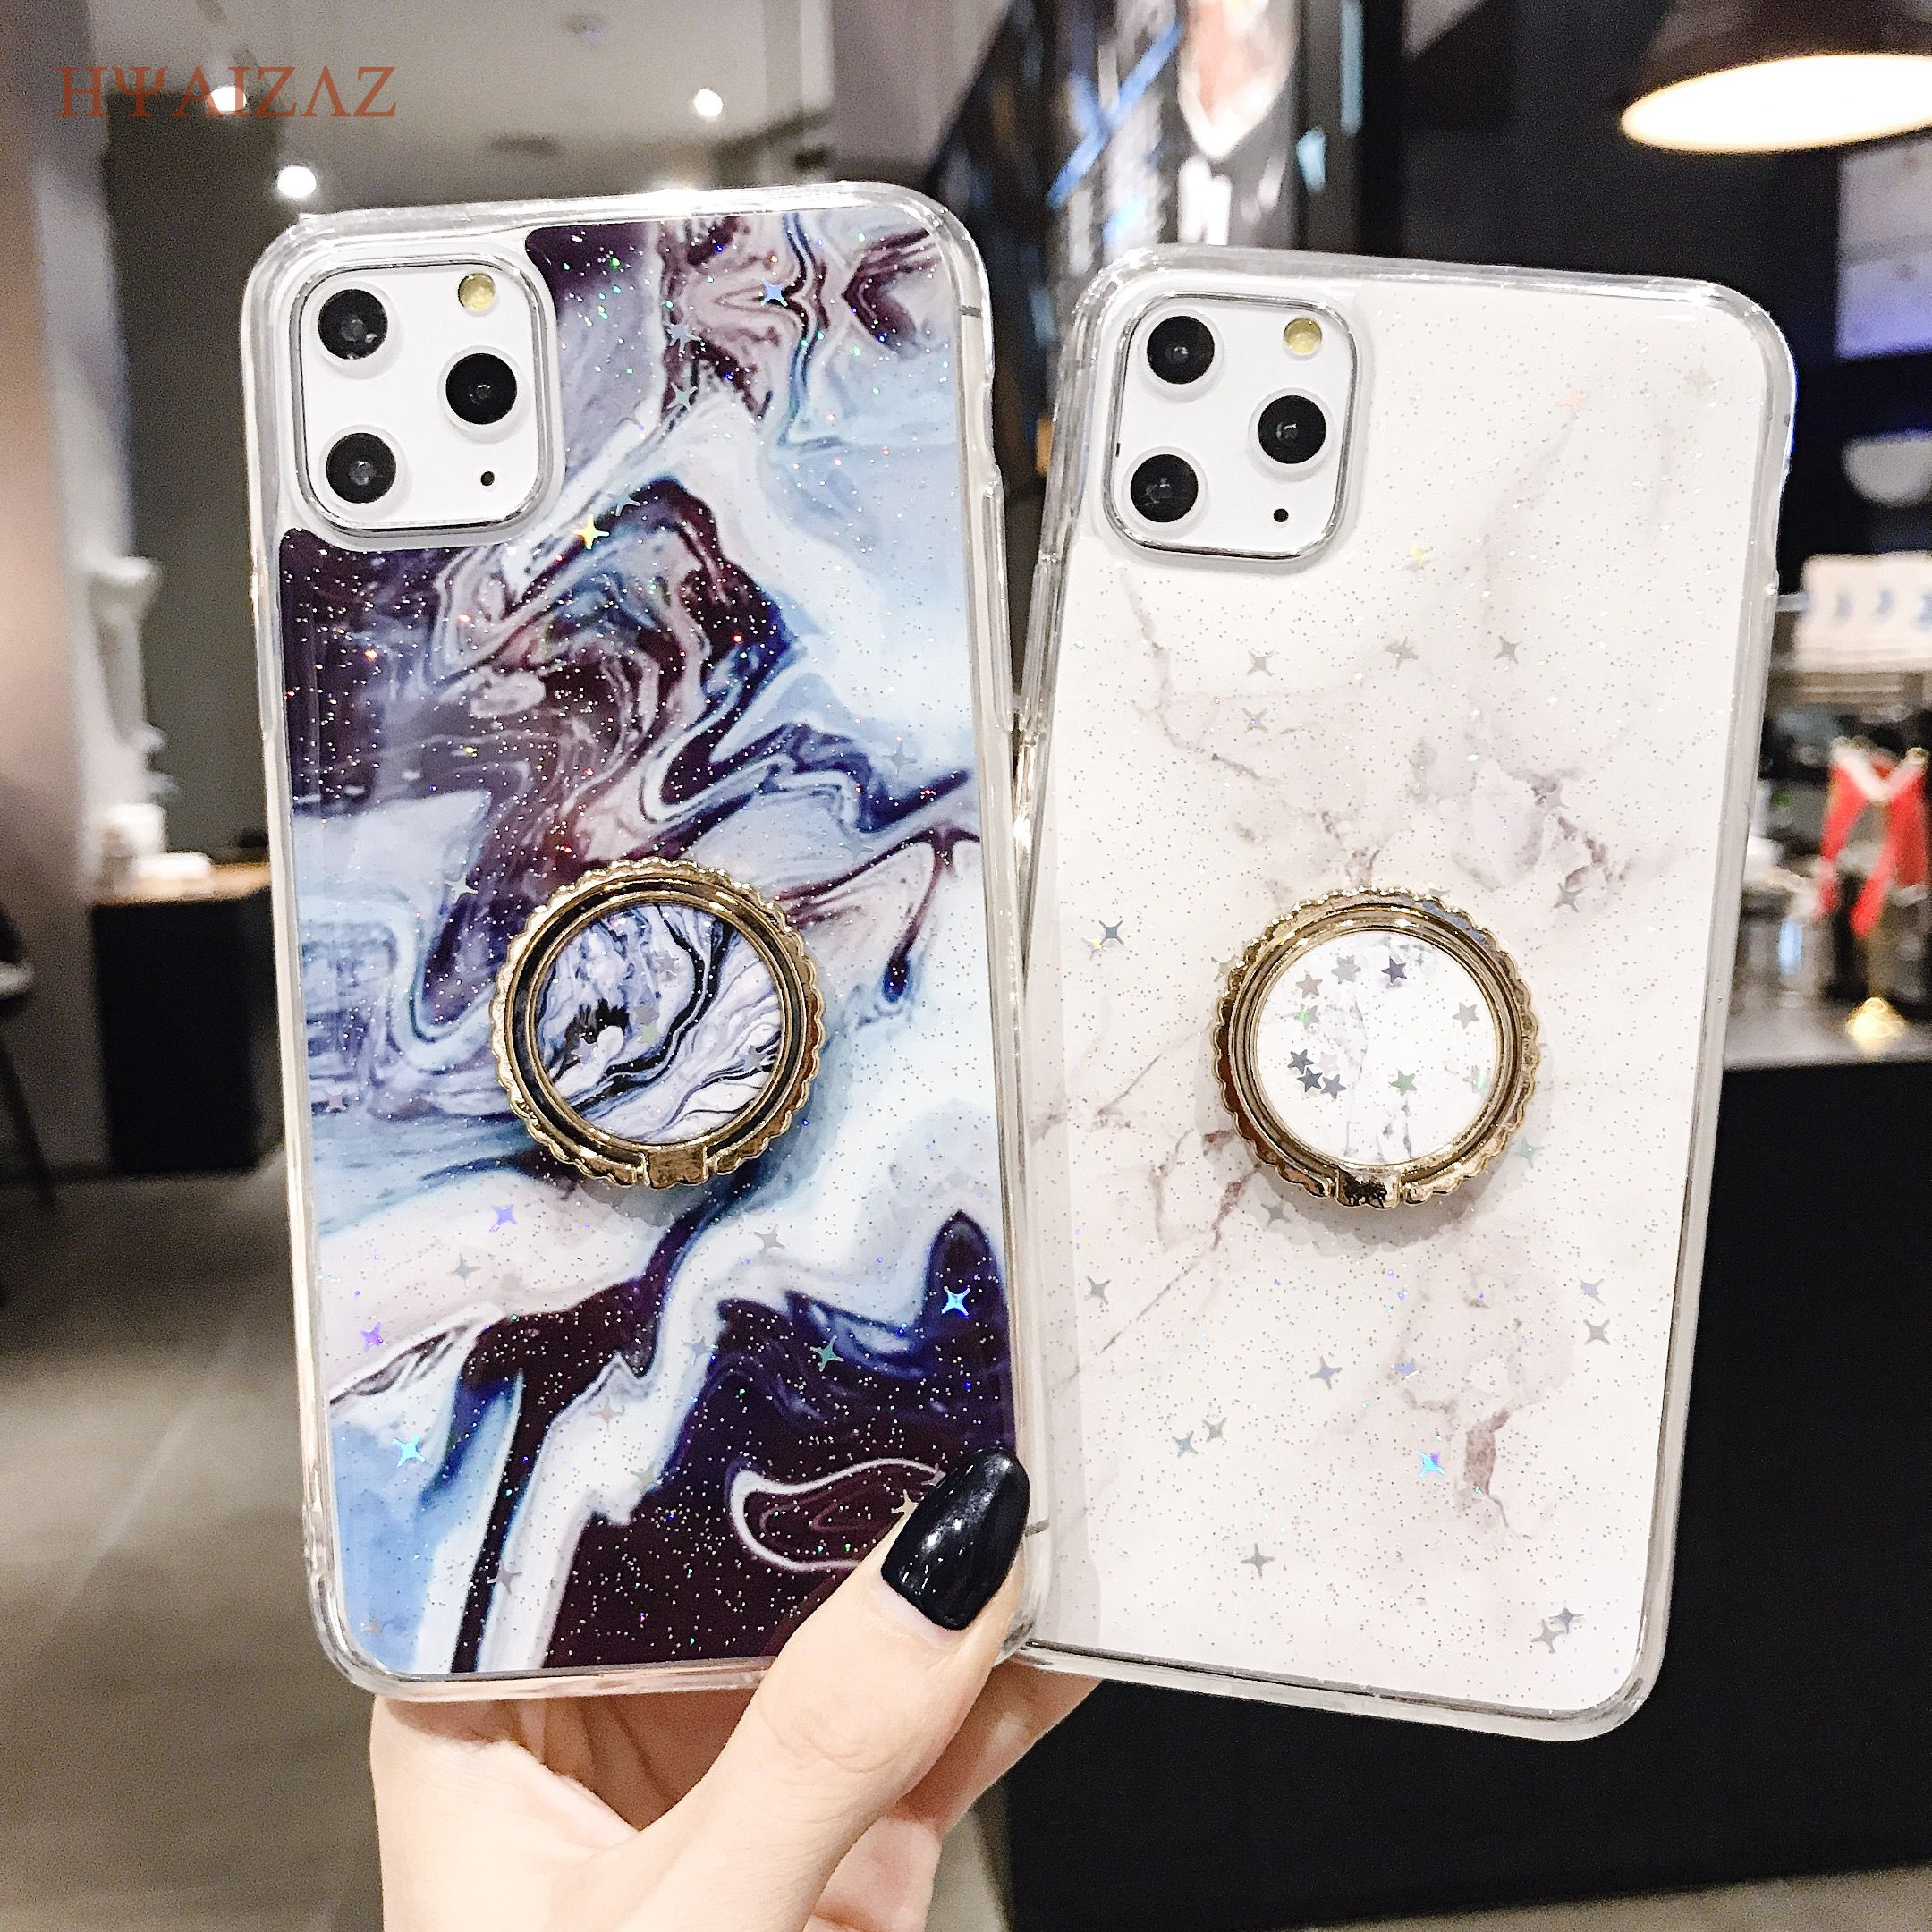 Glitter Marble Case For iPhone 11 6 6s 7 8 Plus Shell Soft TPU Ring Stand Holder Cases For iPhone 11 Pro X Xr Xs Max Cover Coque